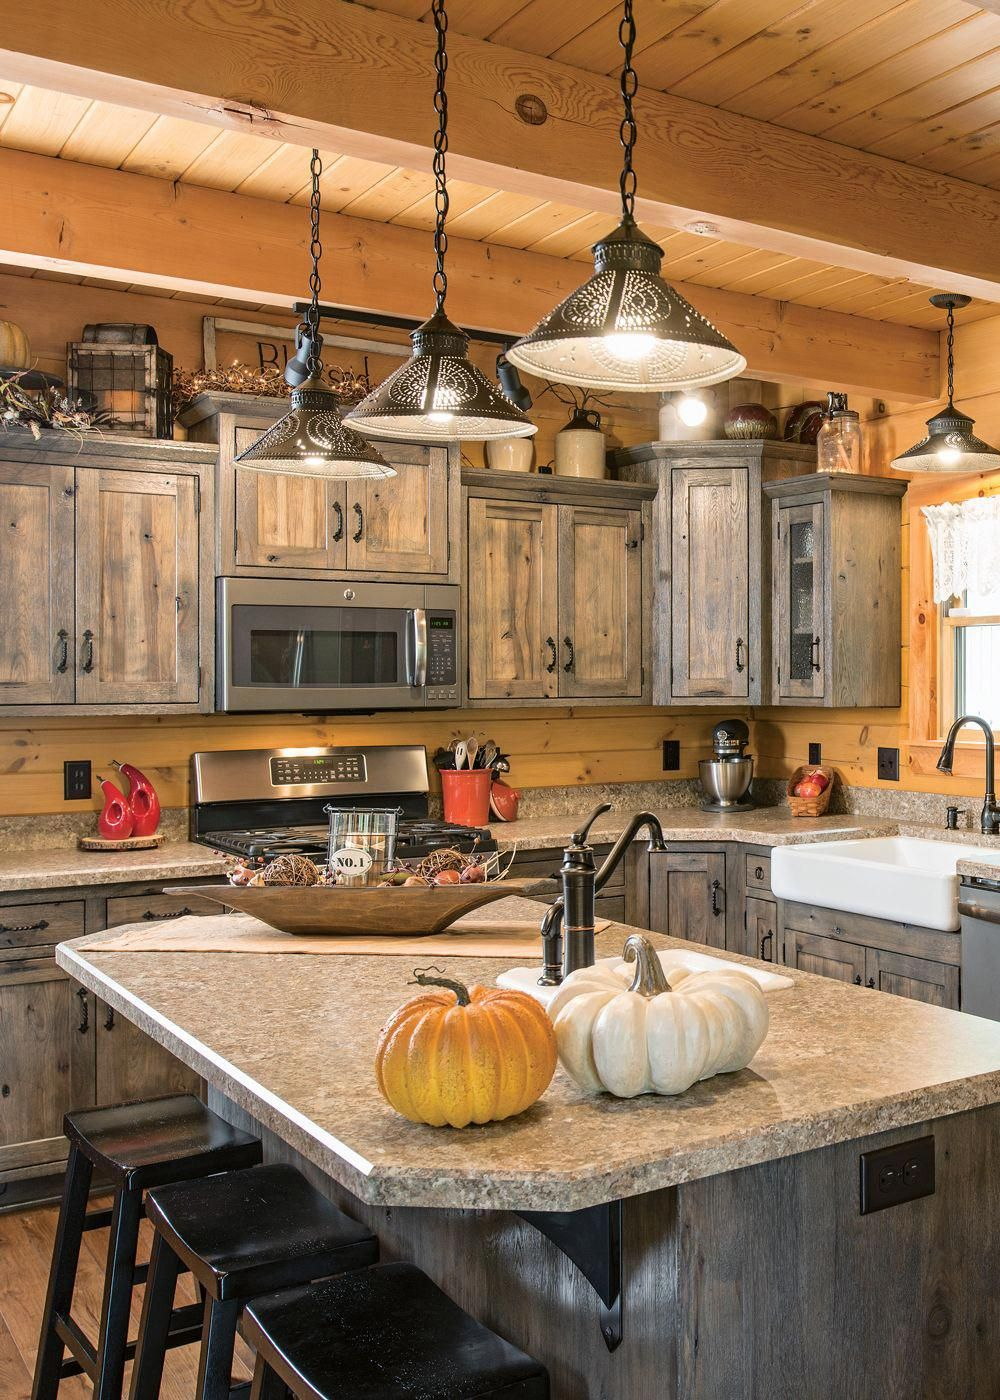 How much does a bathroom renovation cost? | Log home ...